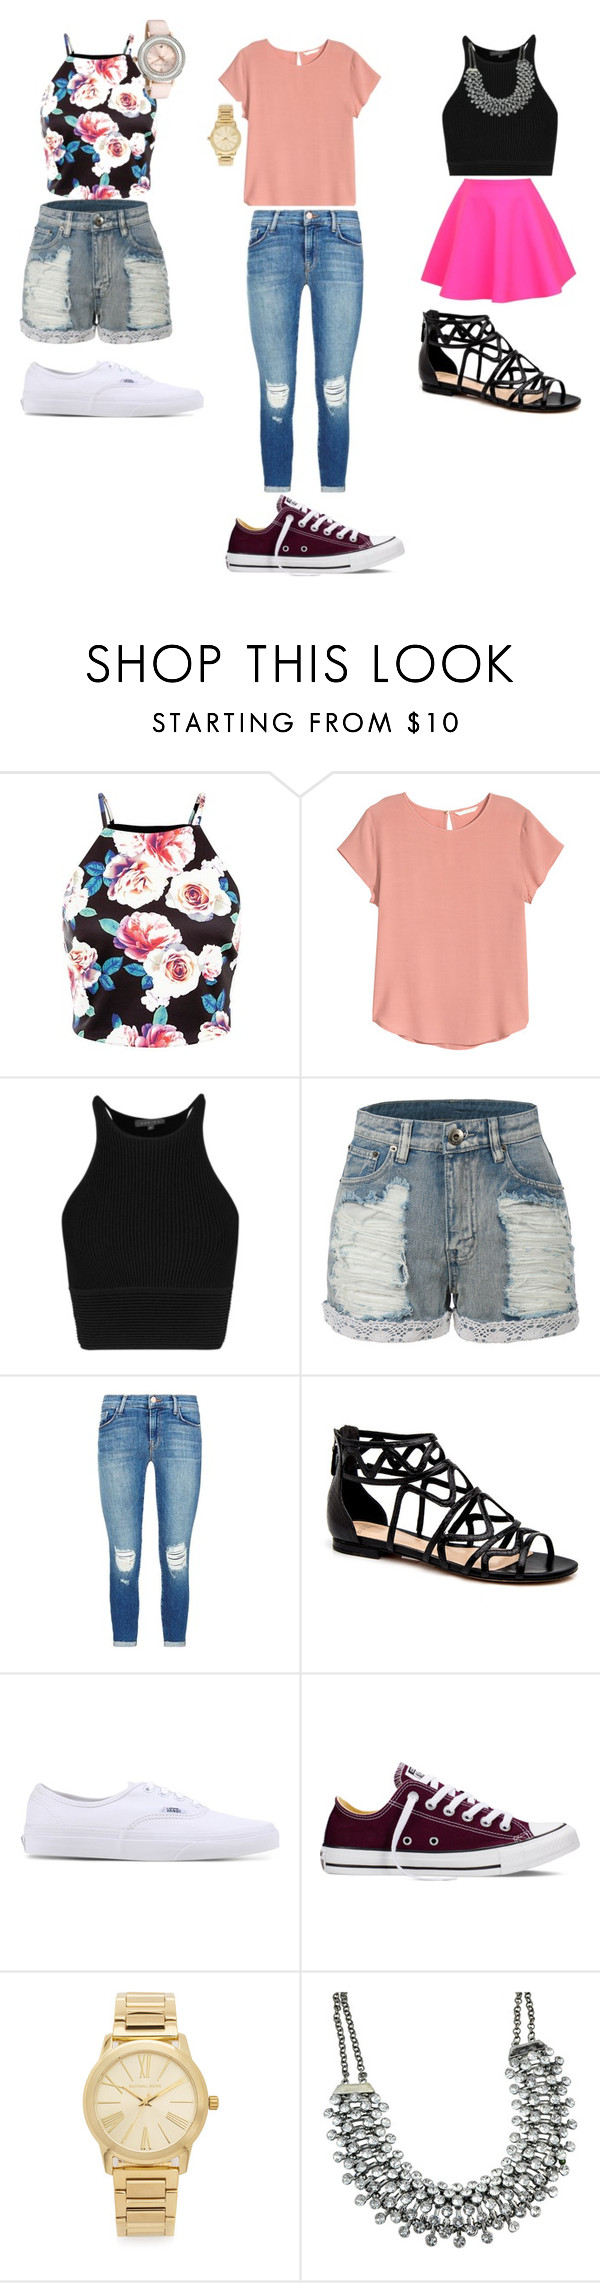 """teen girls night out"" by trillest03 ❤ liked on Polyvore featuring H&M, UNIF, LE3NO, J Brand, Vans, Converse, Michael Kors and Ted Baker"